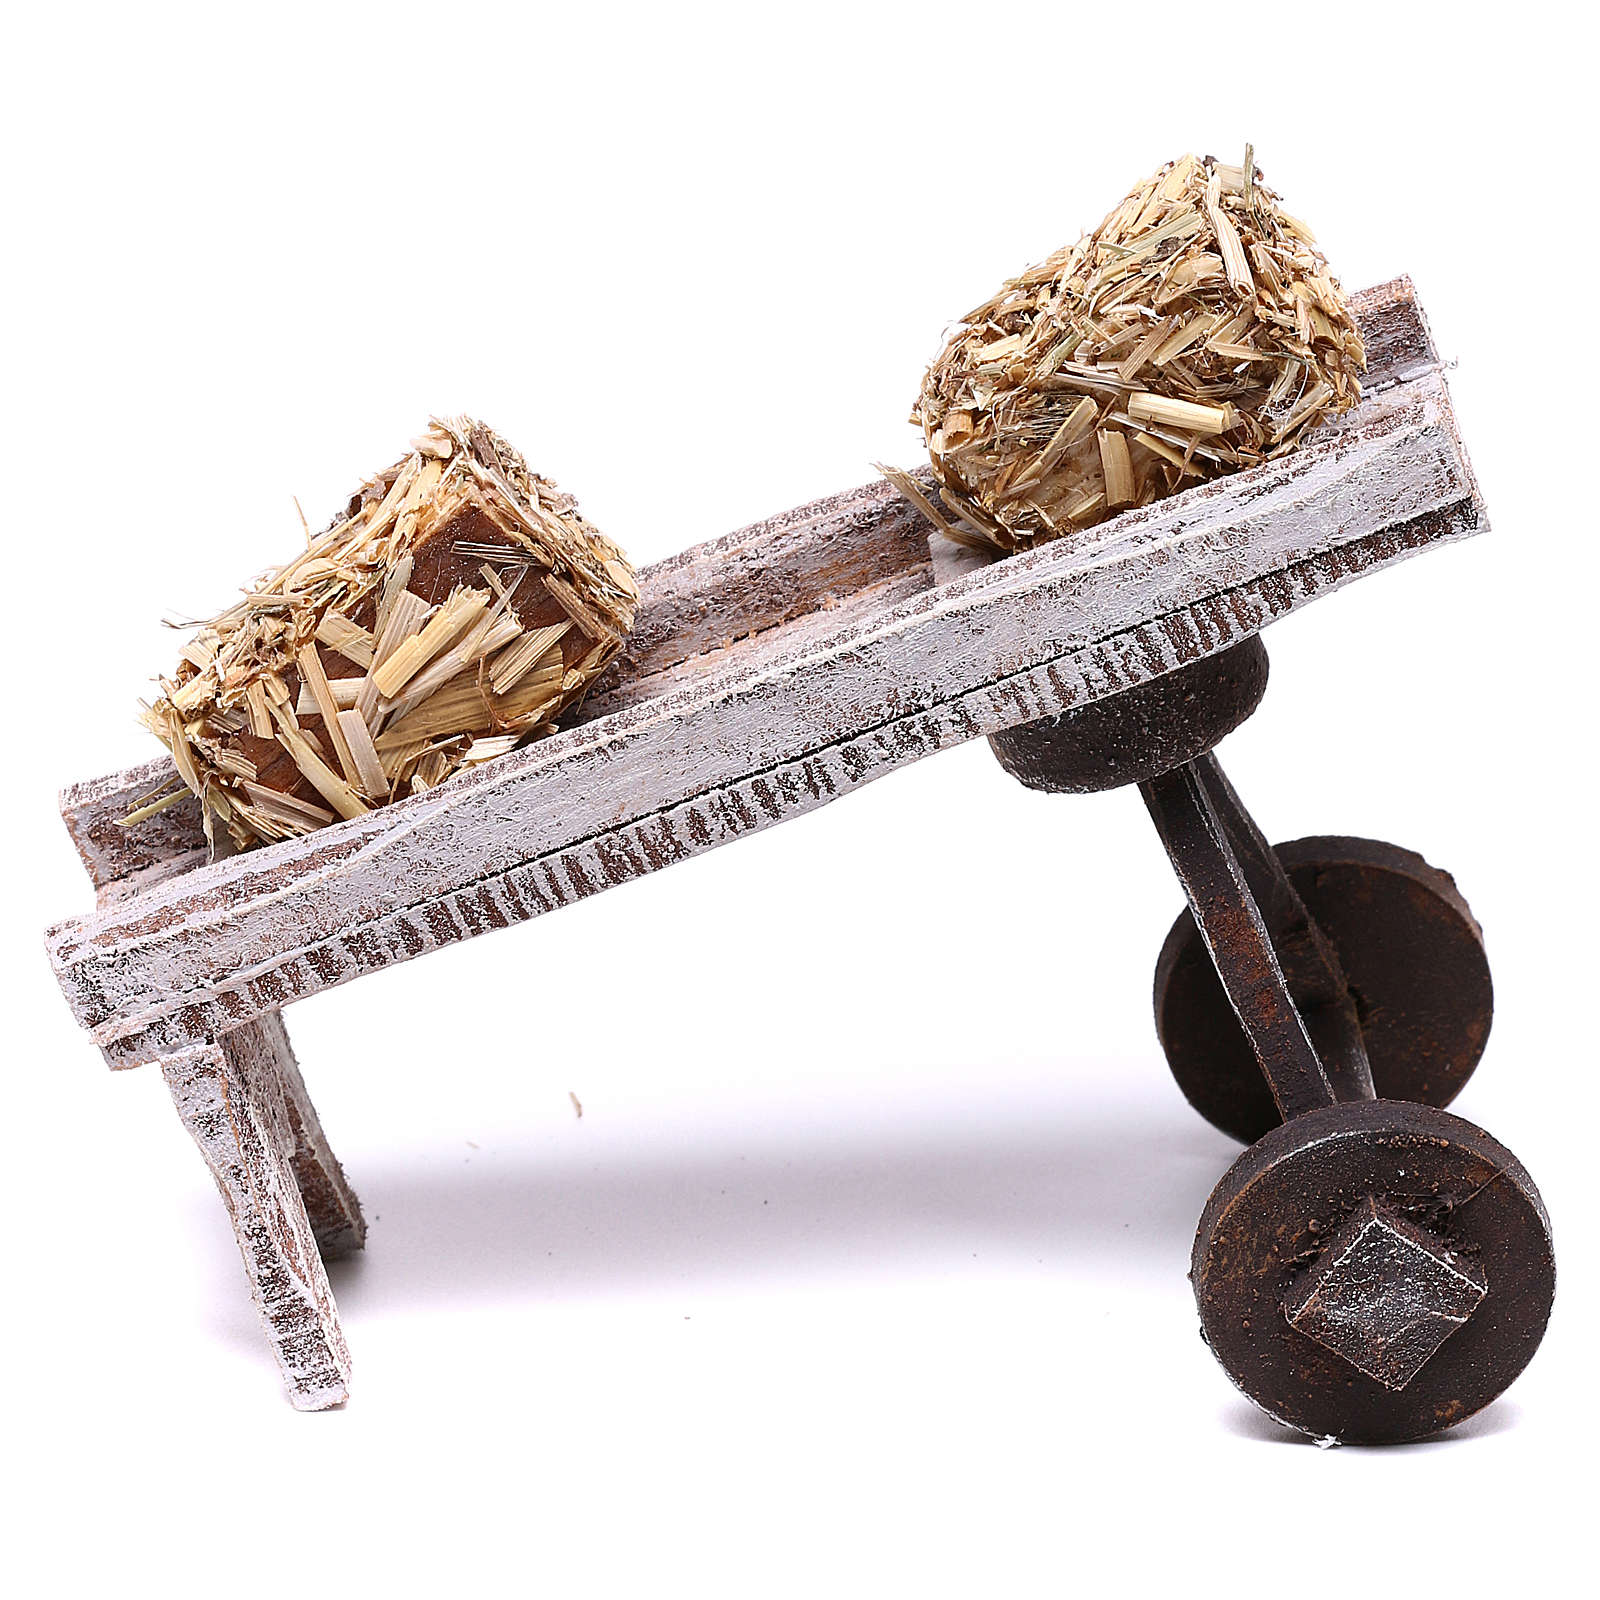 Accessory for hay of 10x10x5 cm for Nativity scene of 10 cm 4